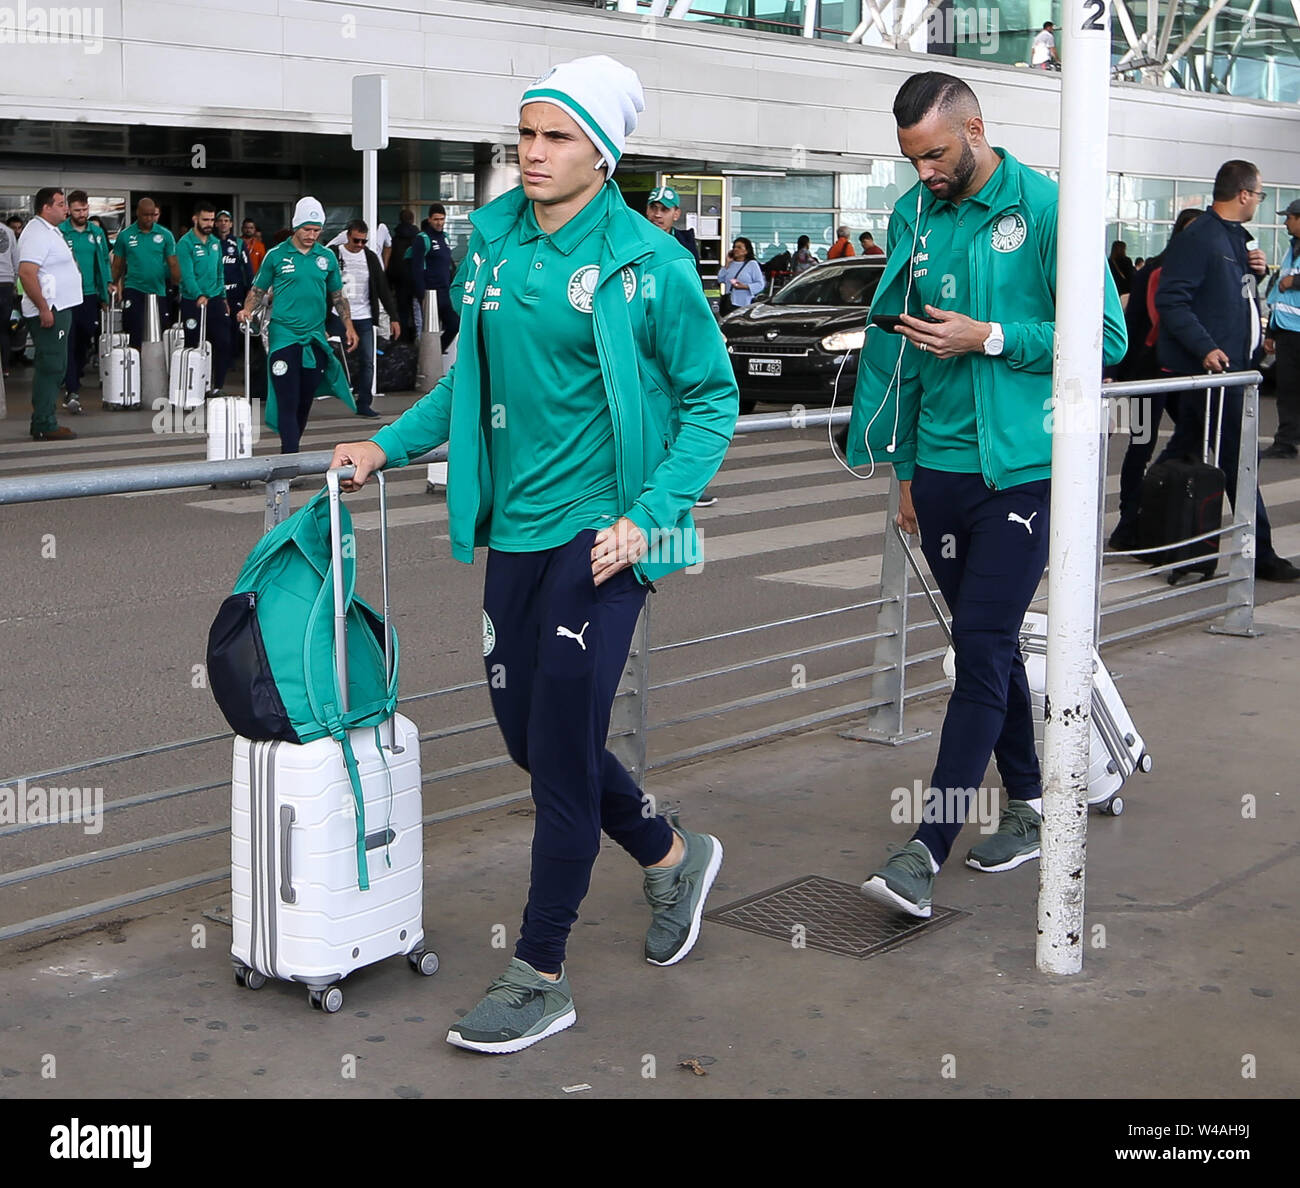 Buenos Aires, Argentina. 21st July, 2019. Raphael Veiga, from SE Palmeiras, during landing, at Buenos Aires International Airport. Credit: Cesar Greco/FotoArena/Alamy Live News - Stock Image